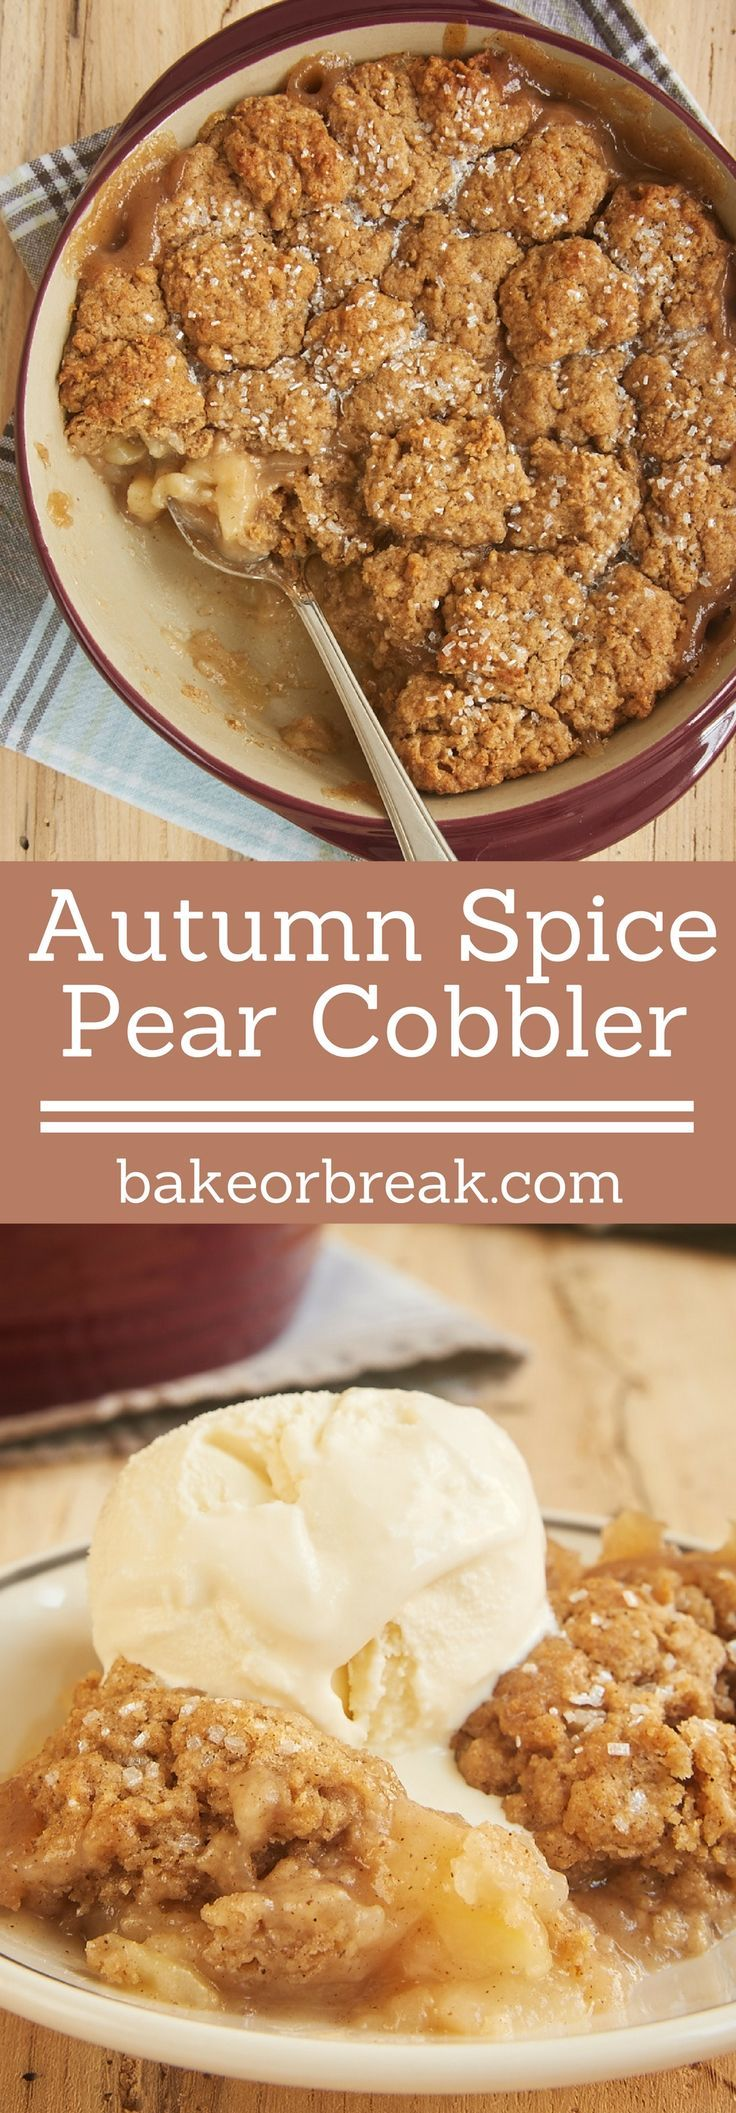 Sweet pears and a wonderful, warm blend of spices combine for this simple and delicious Autumn Spice Pear Cobbler. - Bake or Break ~ http://www.bakeorbreak.com